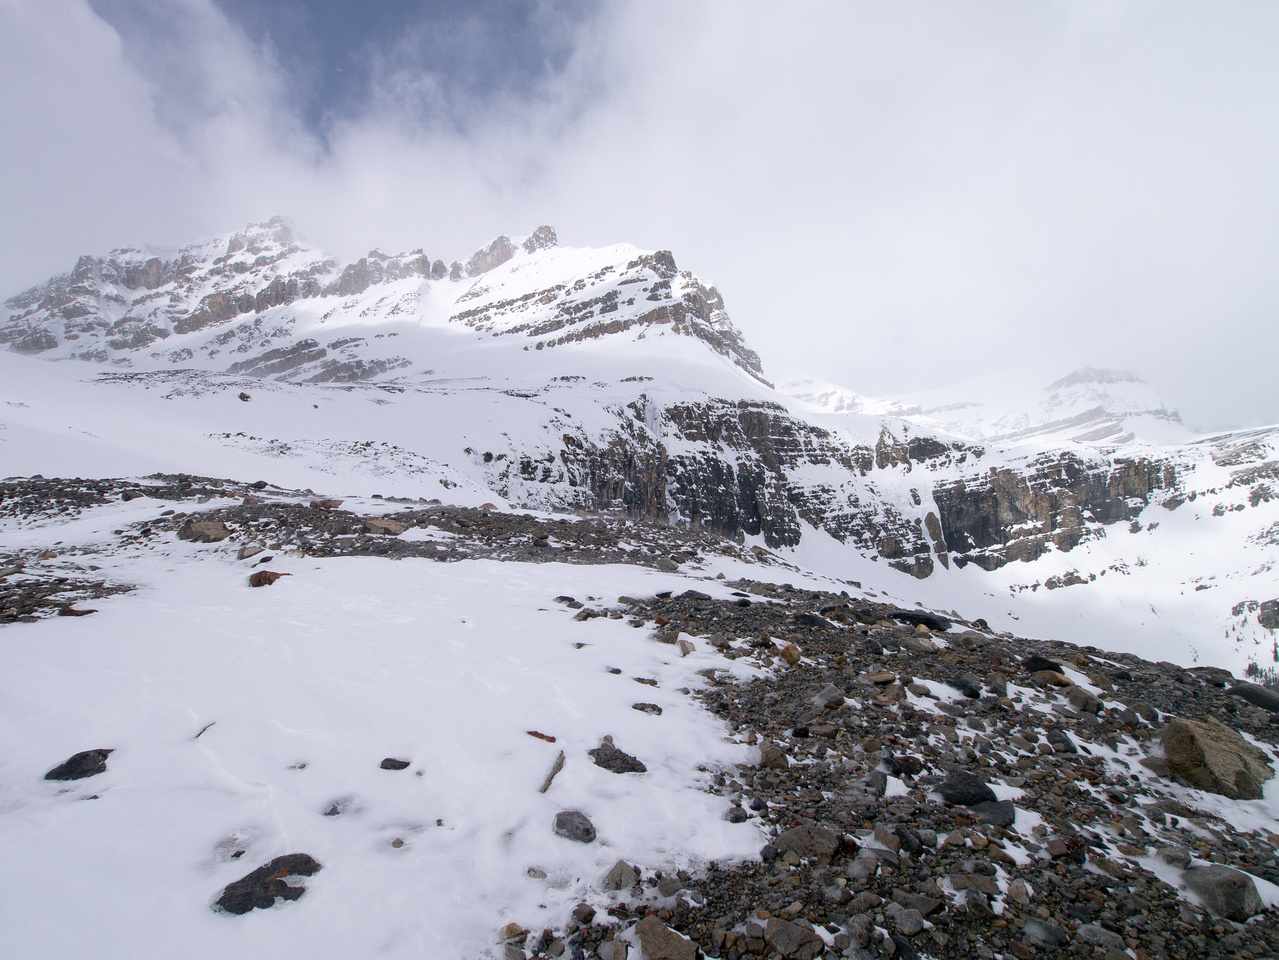 On the wind hammered moraine looking at Peyto Peak.